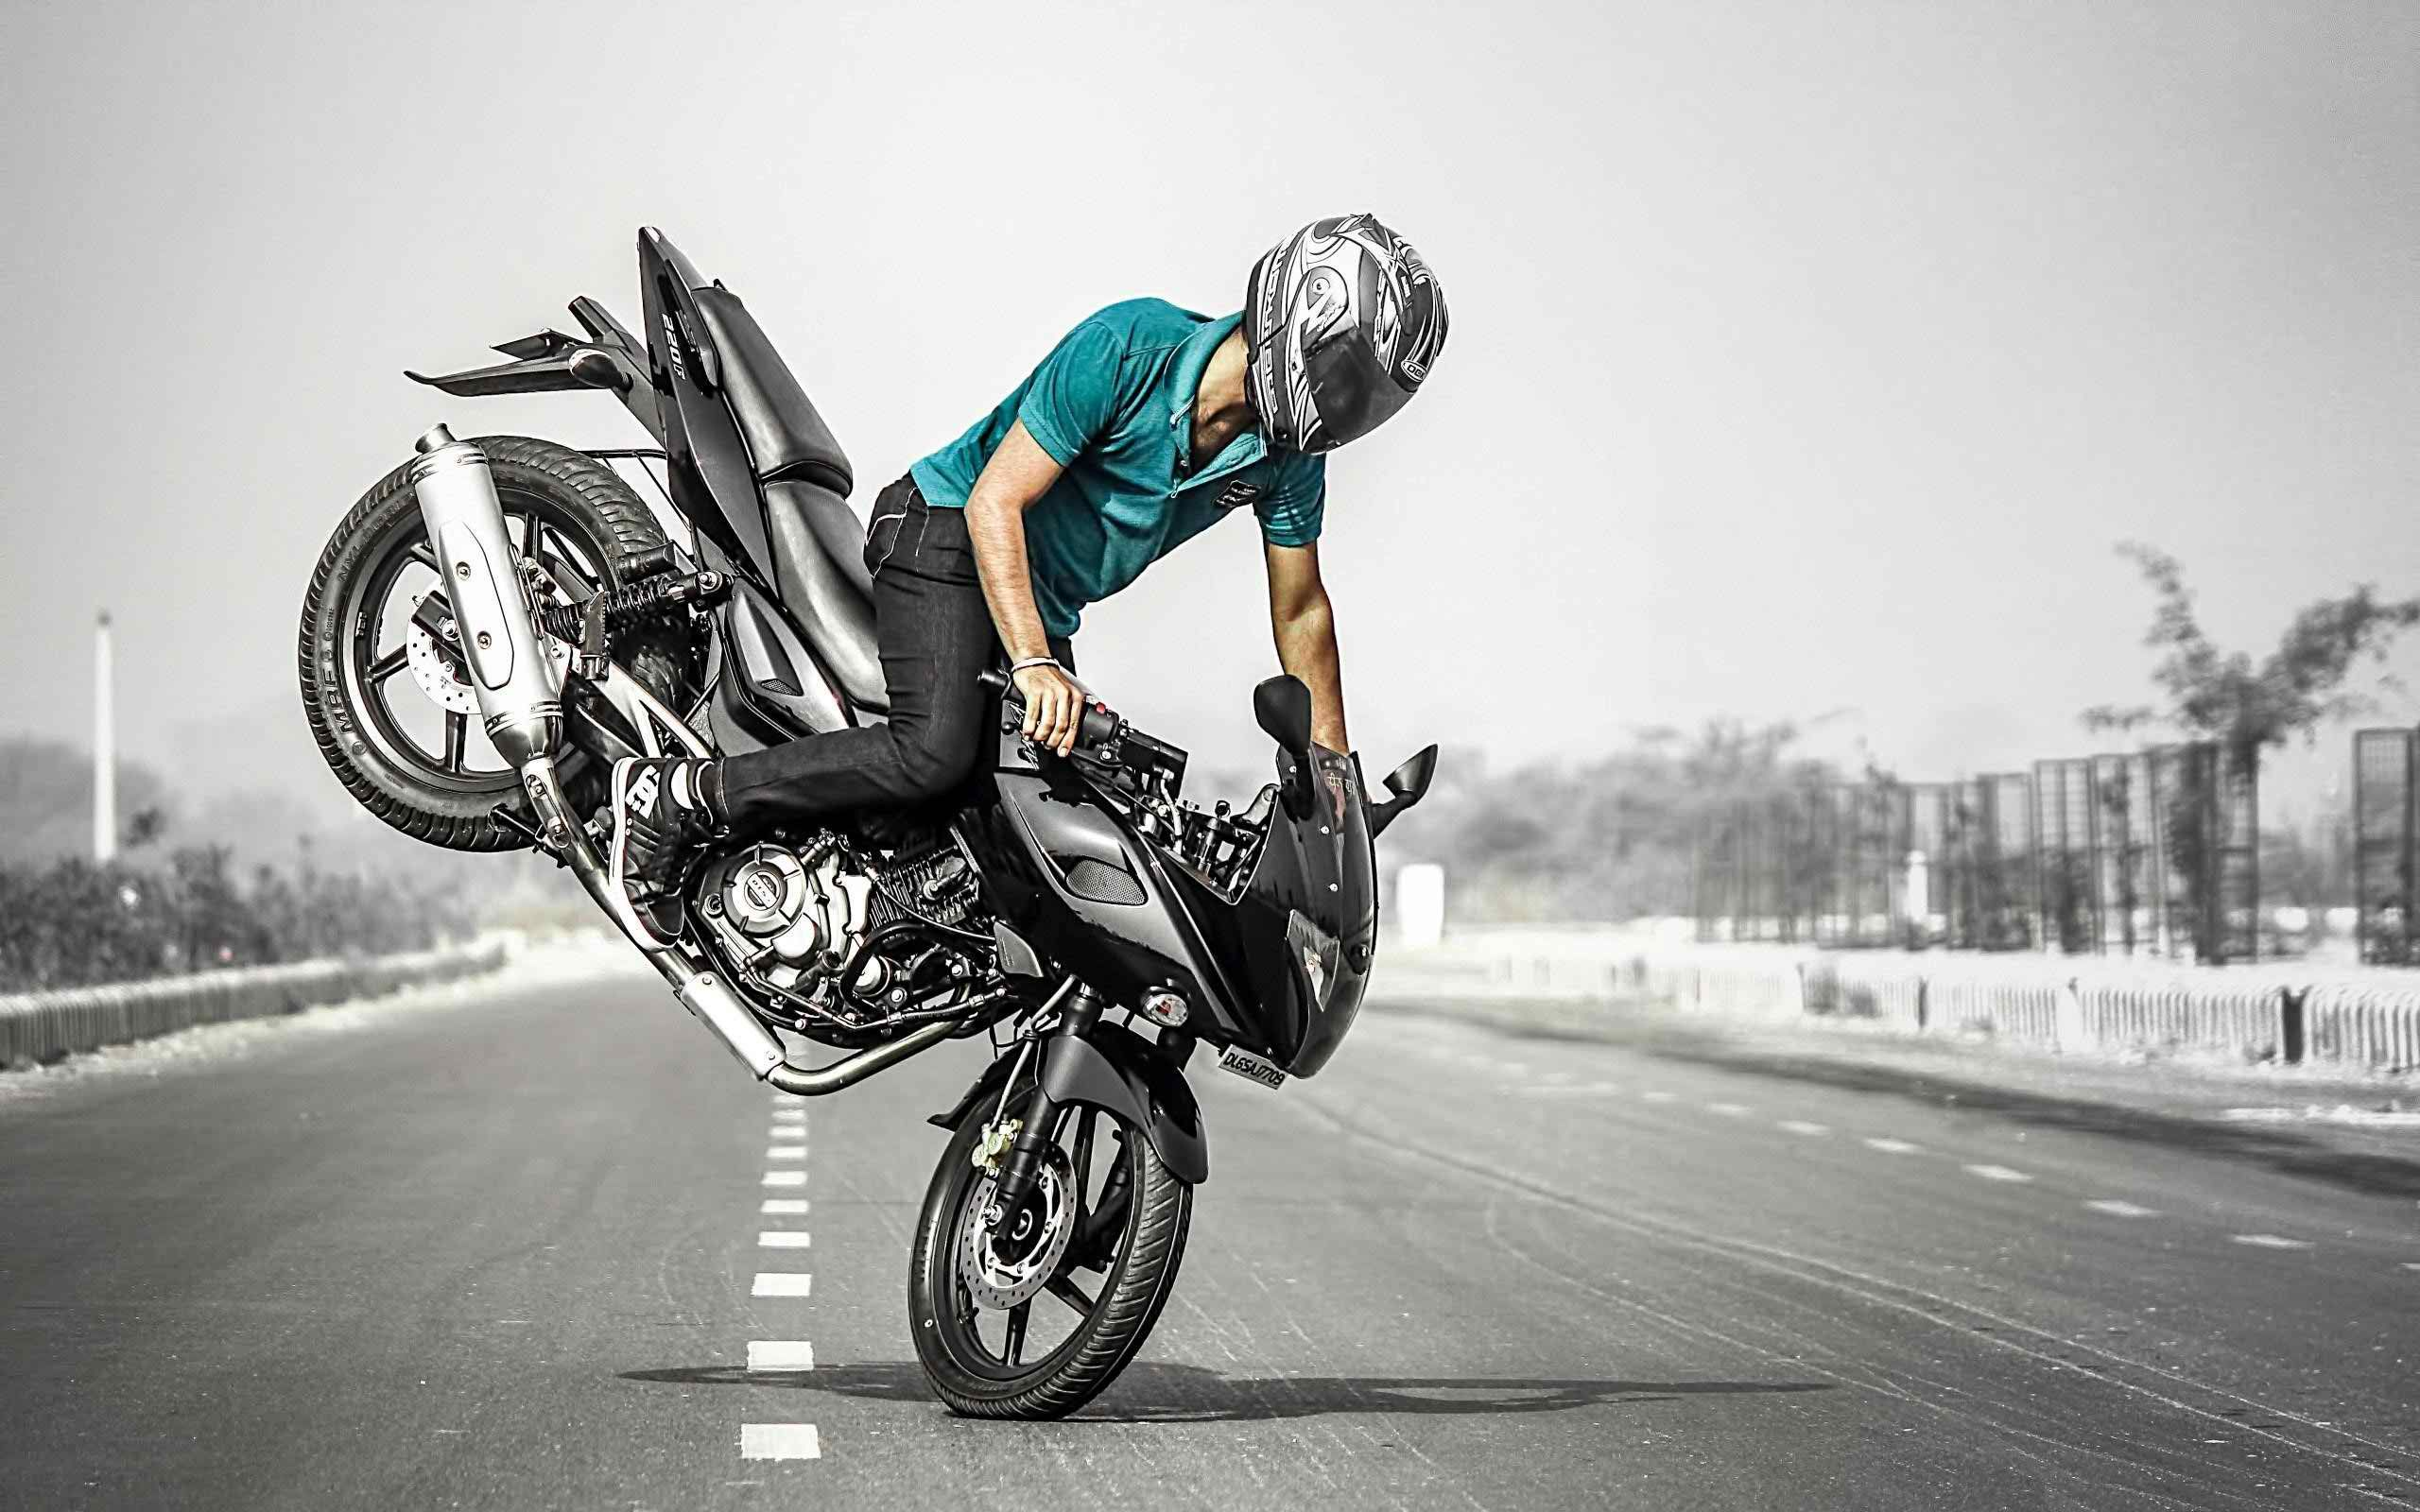 Bike Stunt Hd Wallpapers Stunt Bike Bike Pic Motorcycle